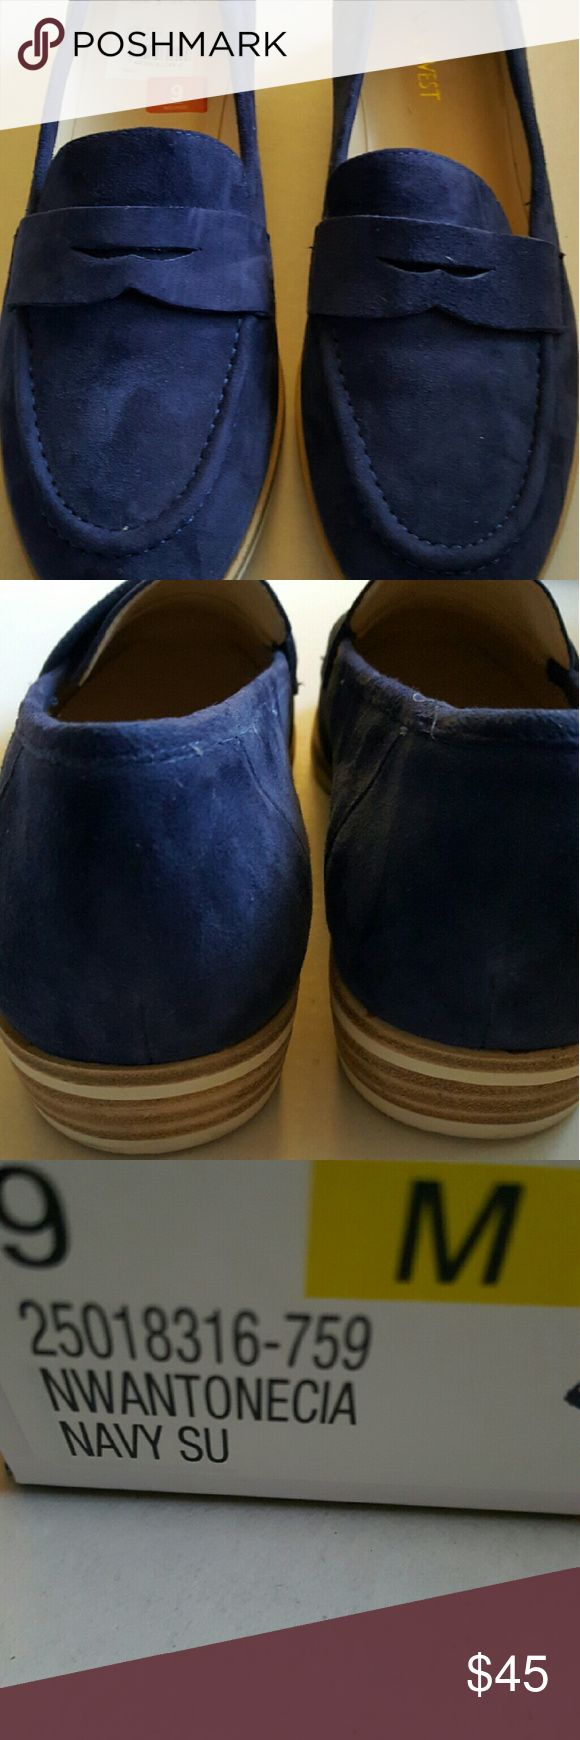 Nine West Blue Suede Shoe Excellent Condition! Blue Suede loafer with White sole. Worn once. Nine West Shoes Flats & Loafers